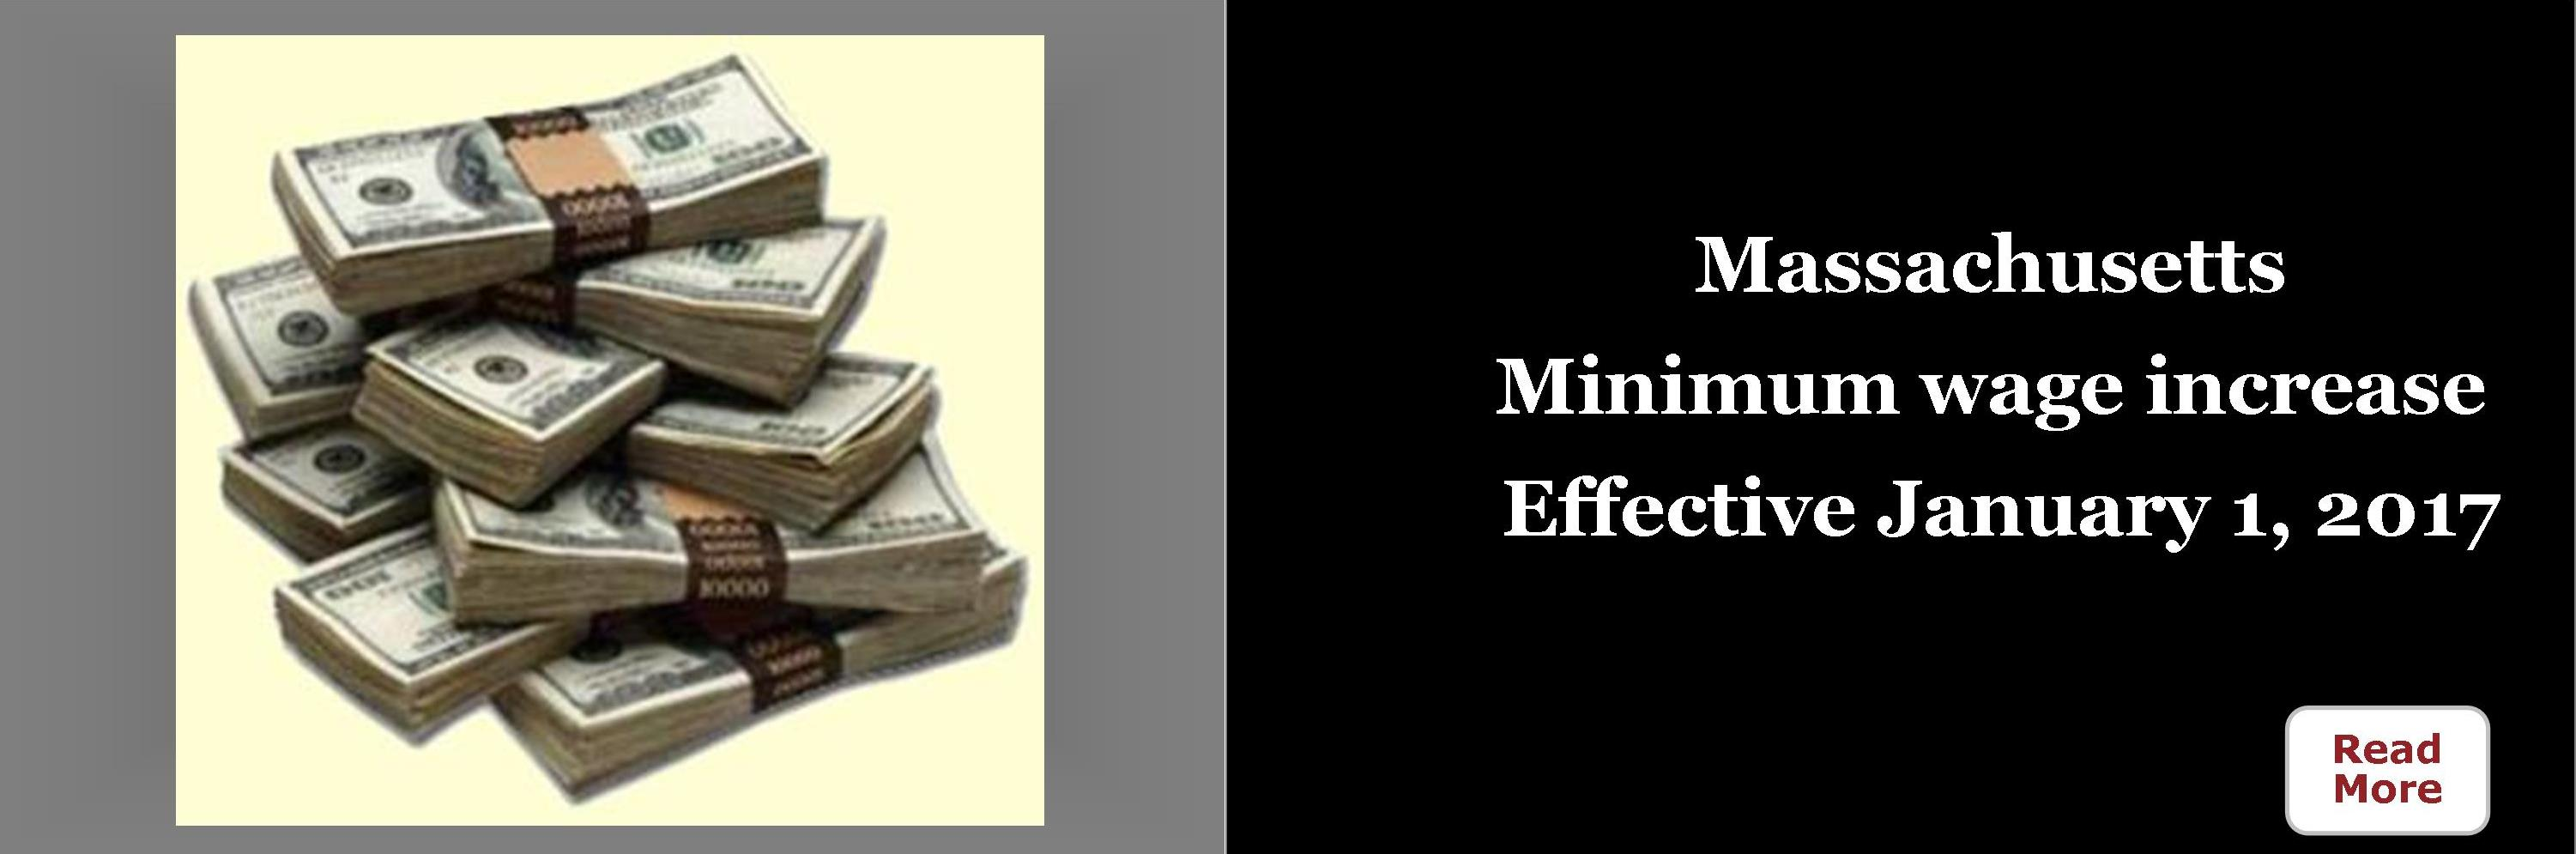 MA Minimum Wage Increase effective 1/1/2017